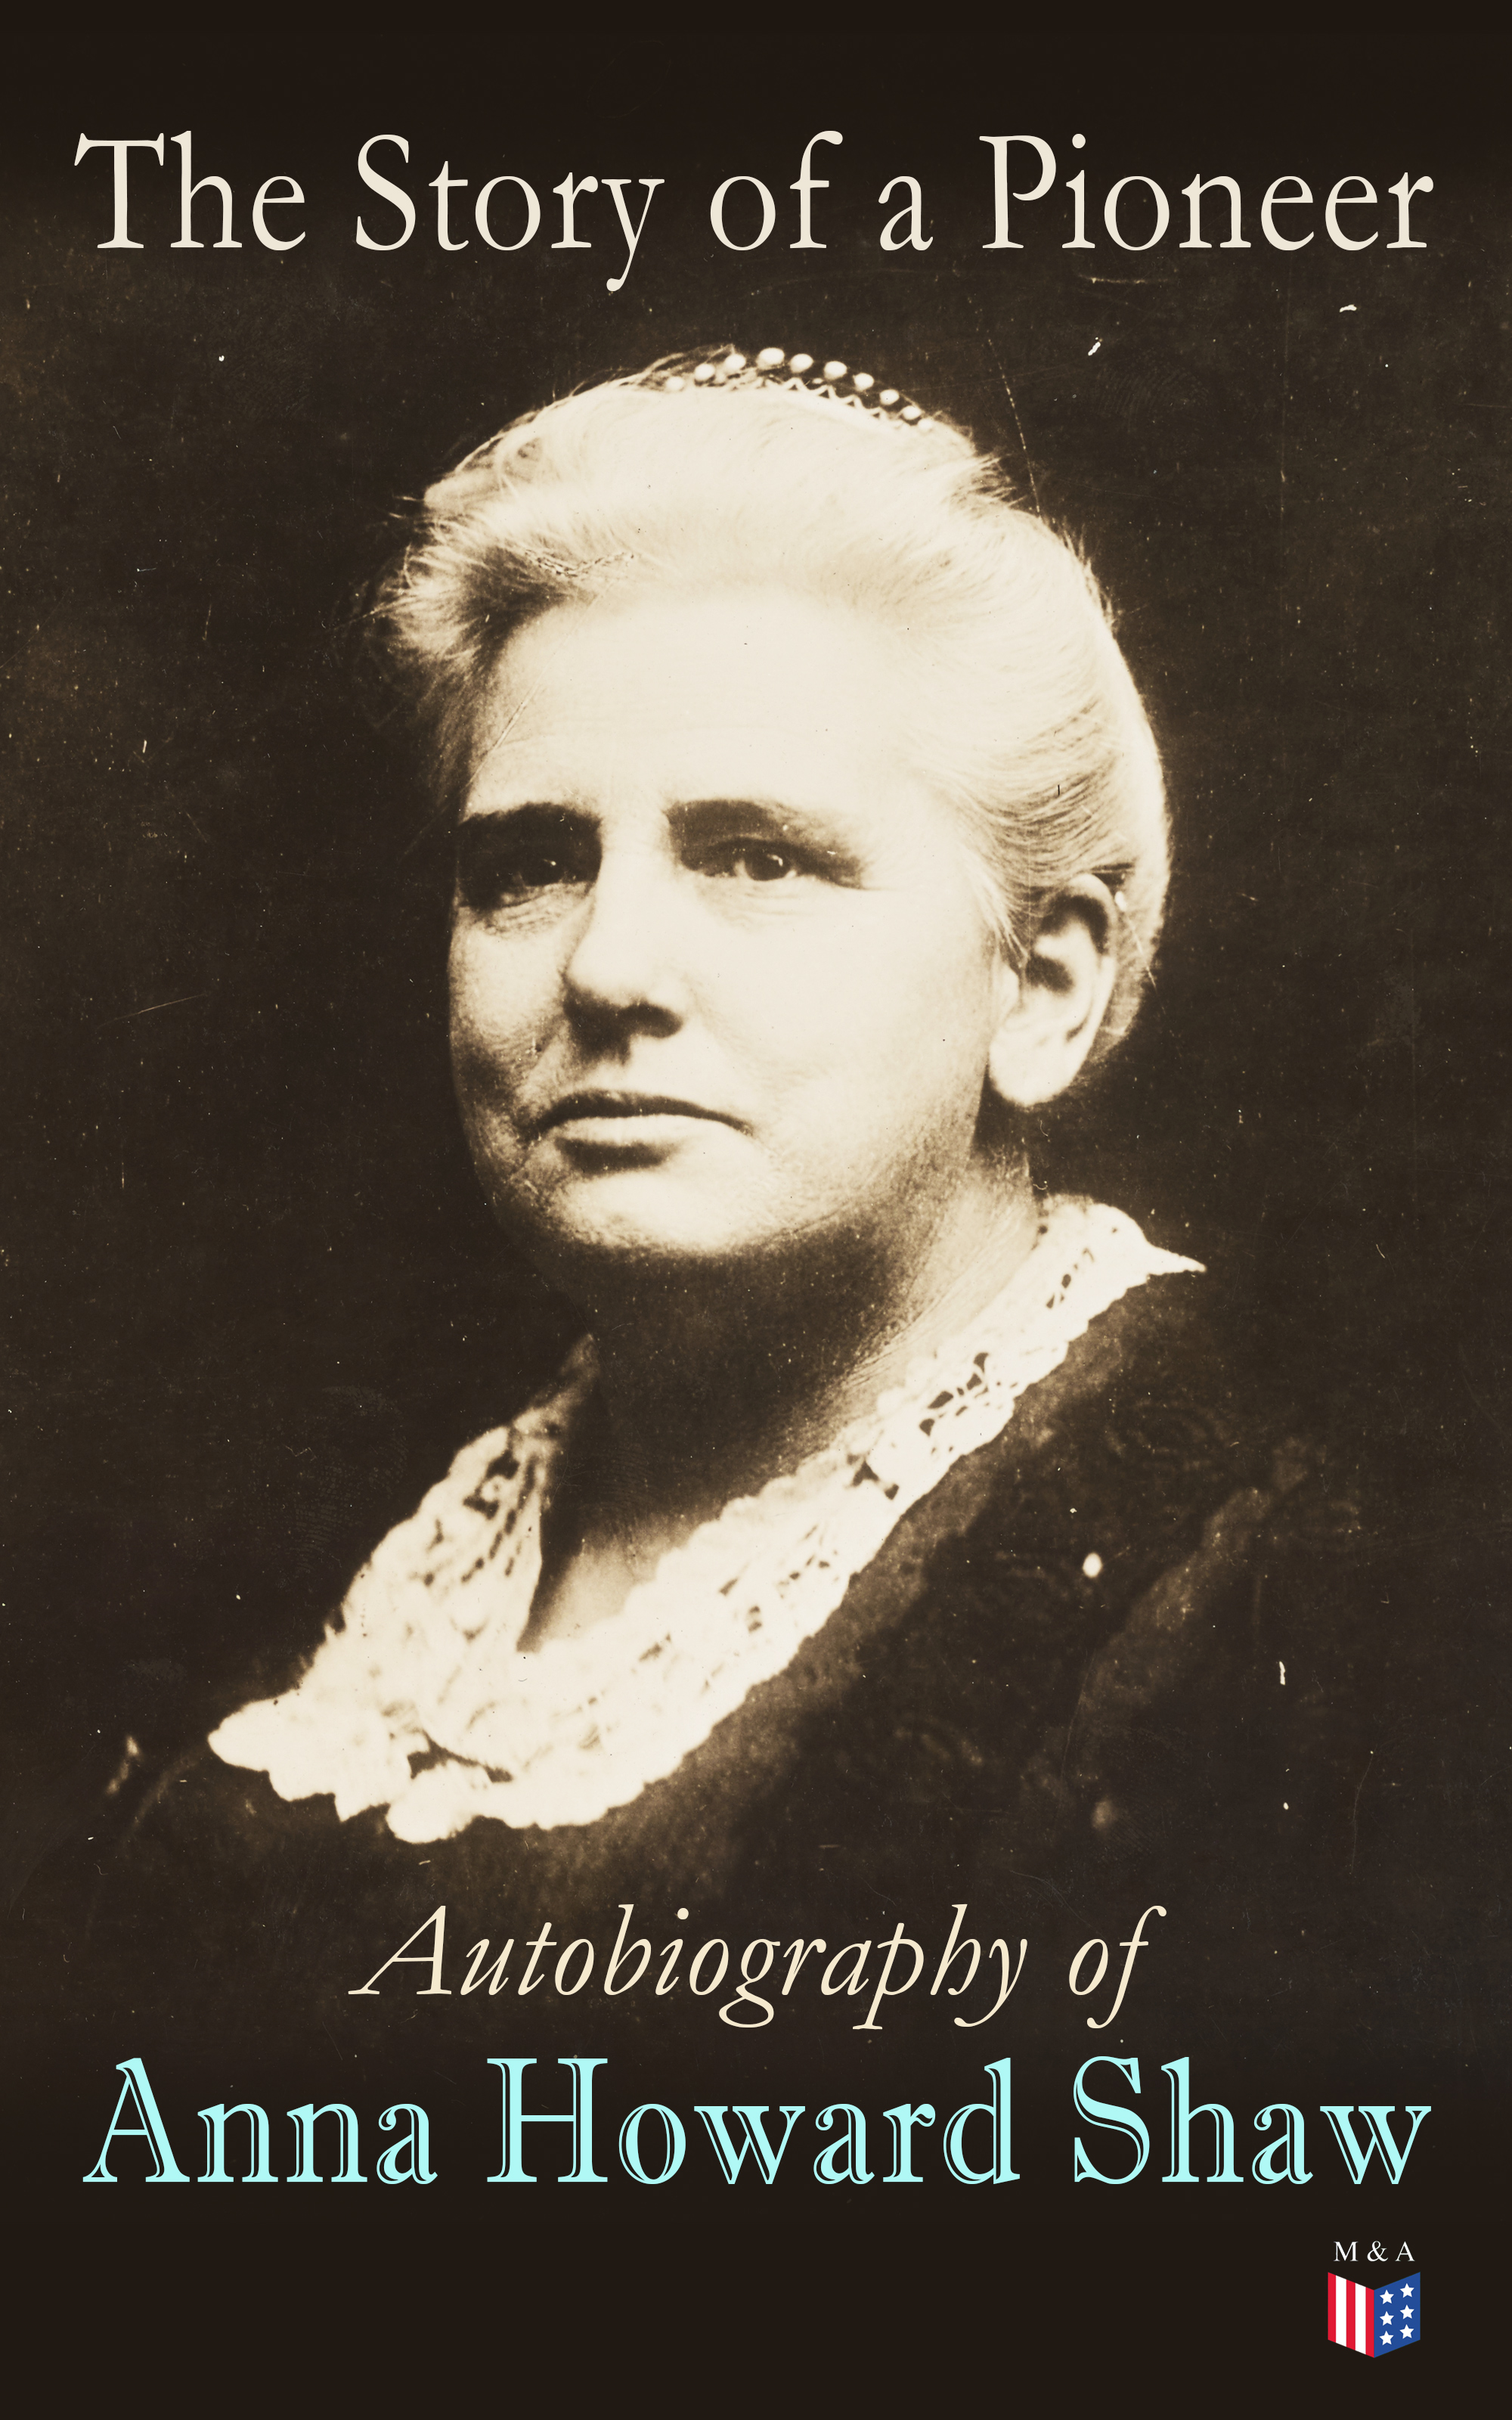 Anna Howard Shaw The Story of a Pioneer: Autobiography of Anna Howard Shaw цена